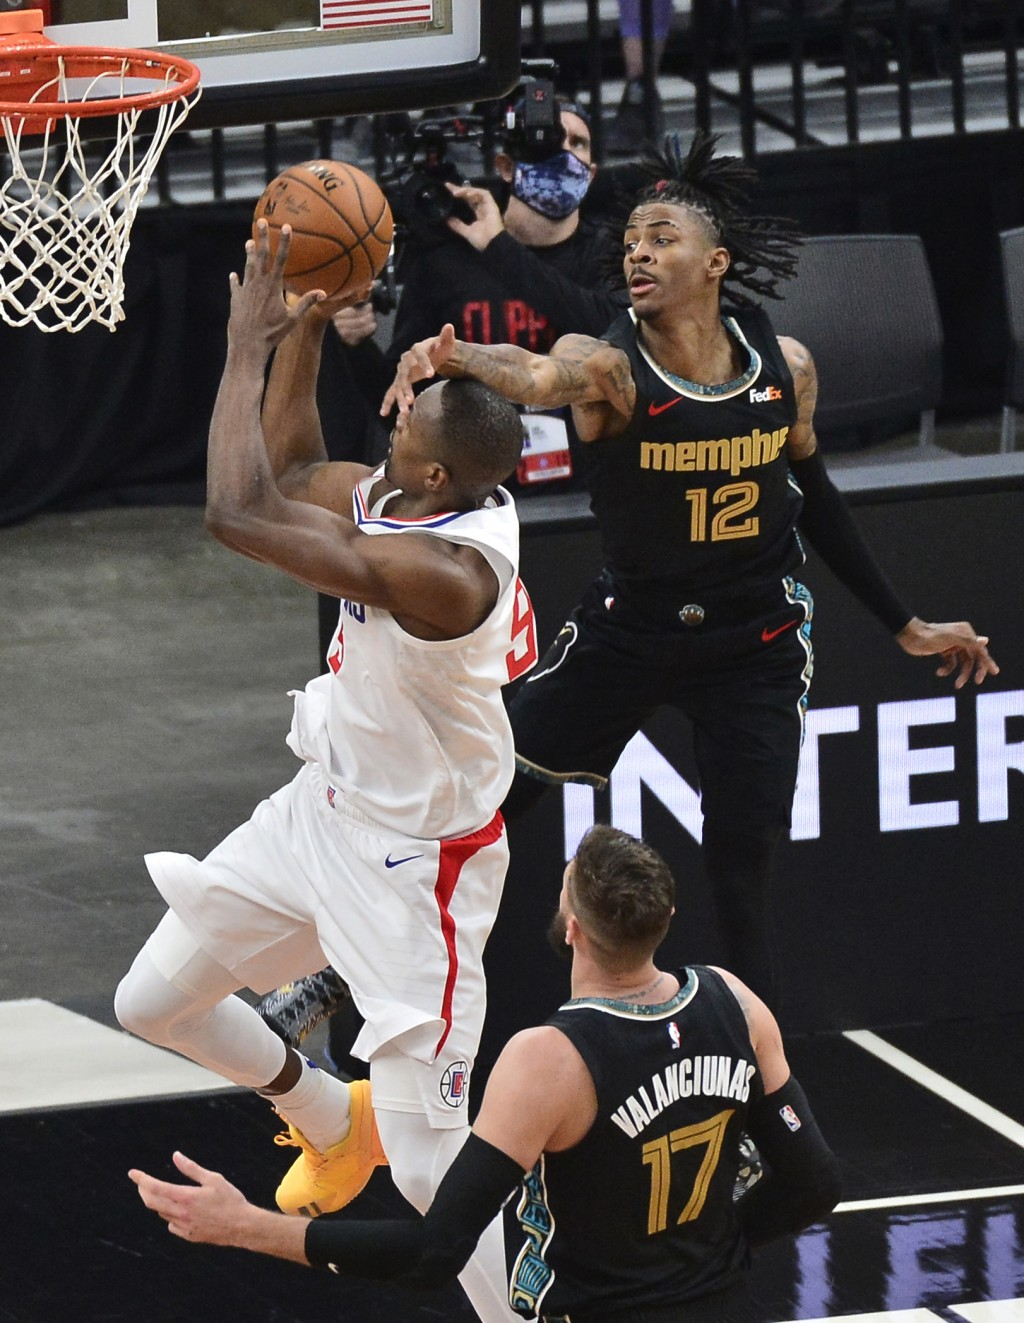 Los Angeles Clippers center Serge Ibaka (9) shoots as Memphis Grizzlies guard Ja Morant (12) gets a hand in front of his face during the first half of...